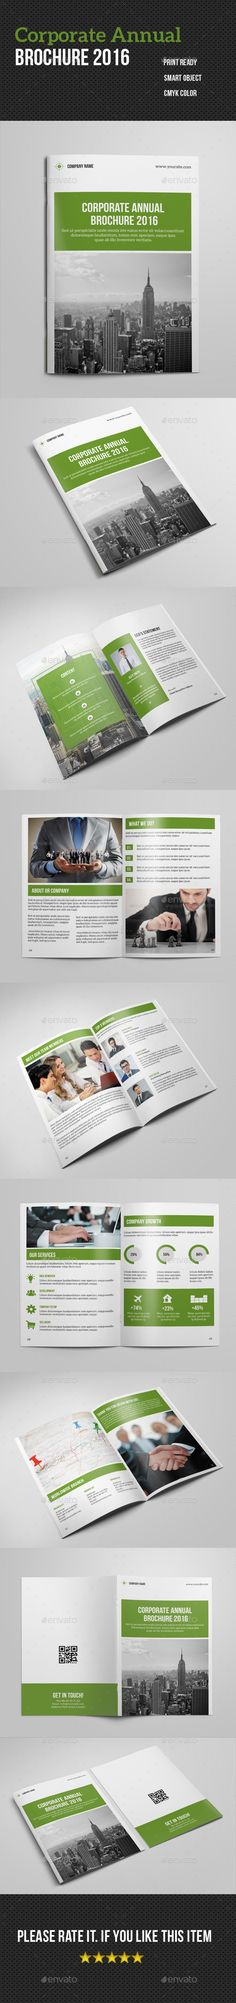 Annual Report Template InDesign INDD Download here http - annual report templates free download